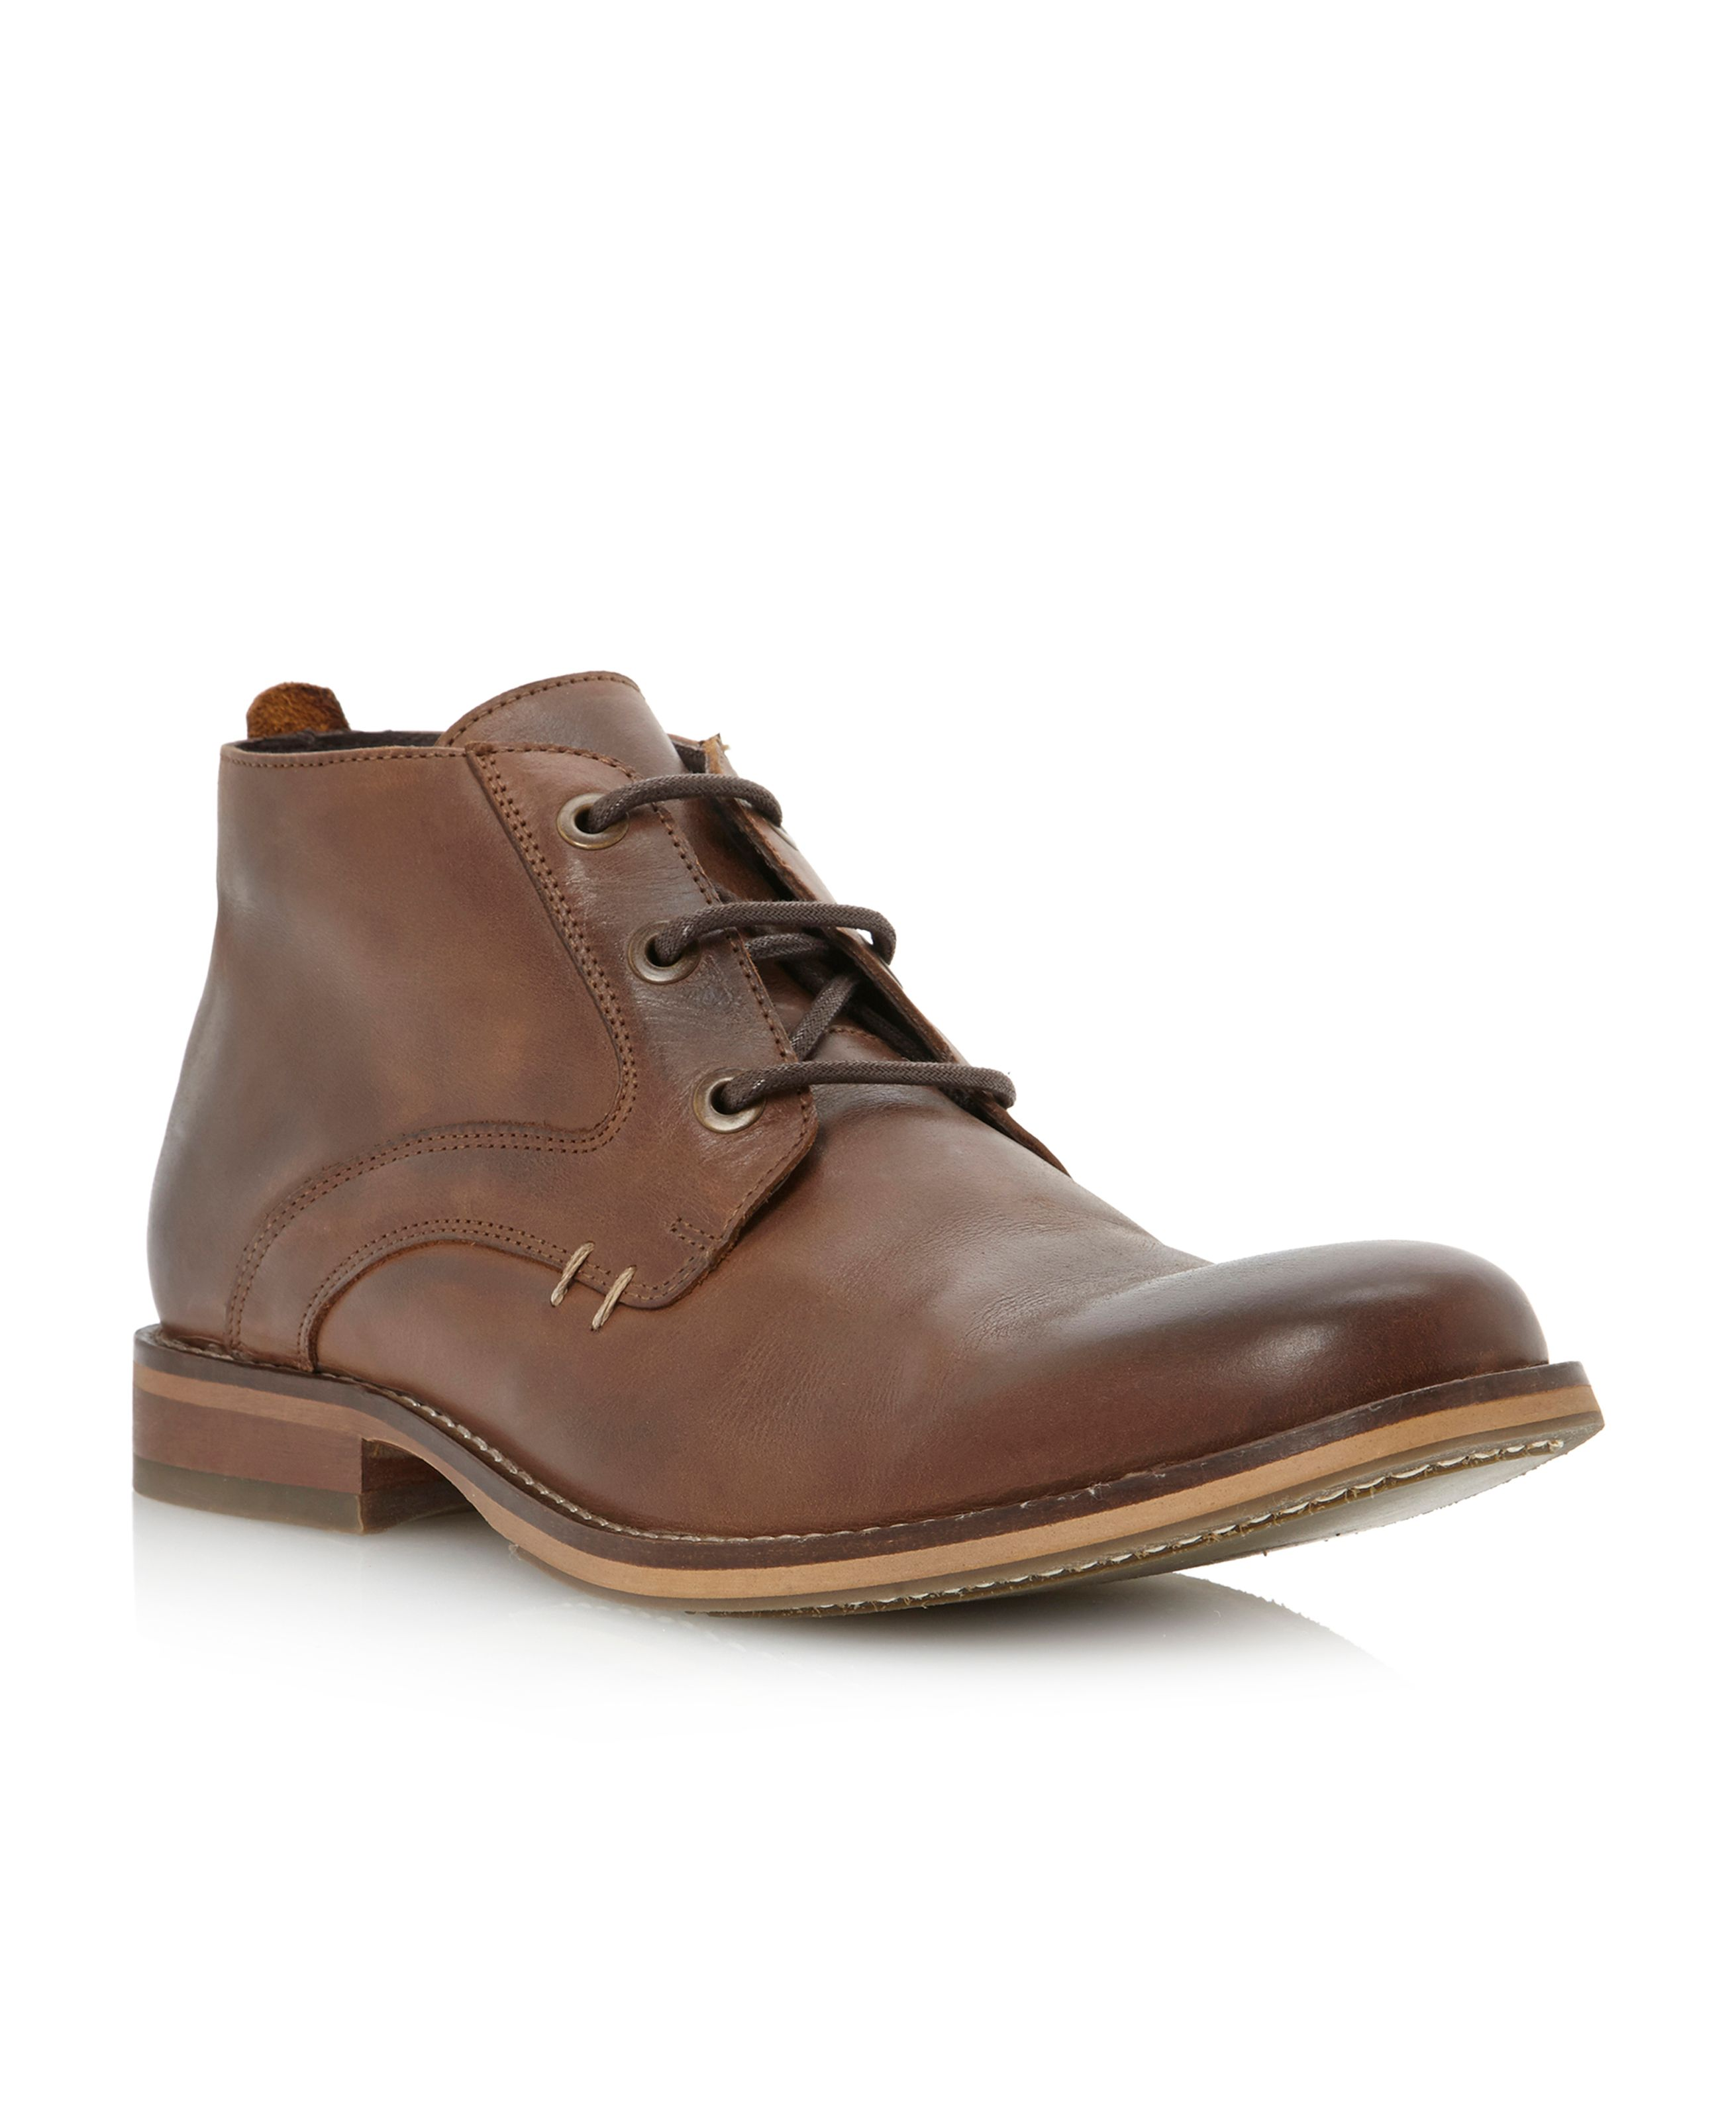 Chaser lace up chukka boot